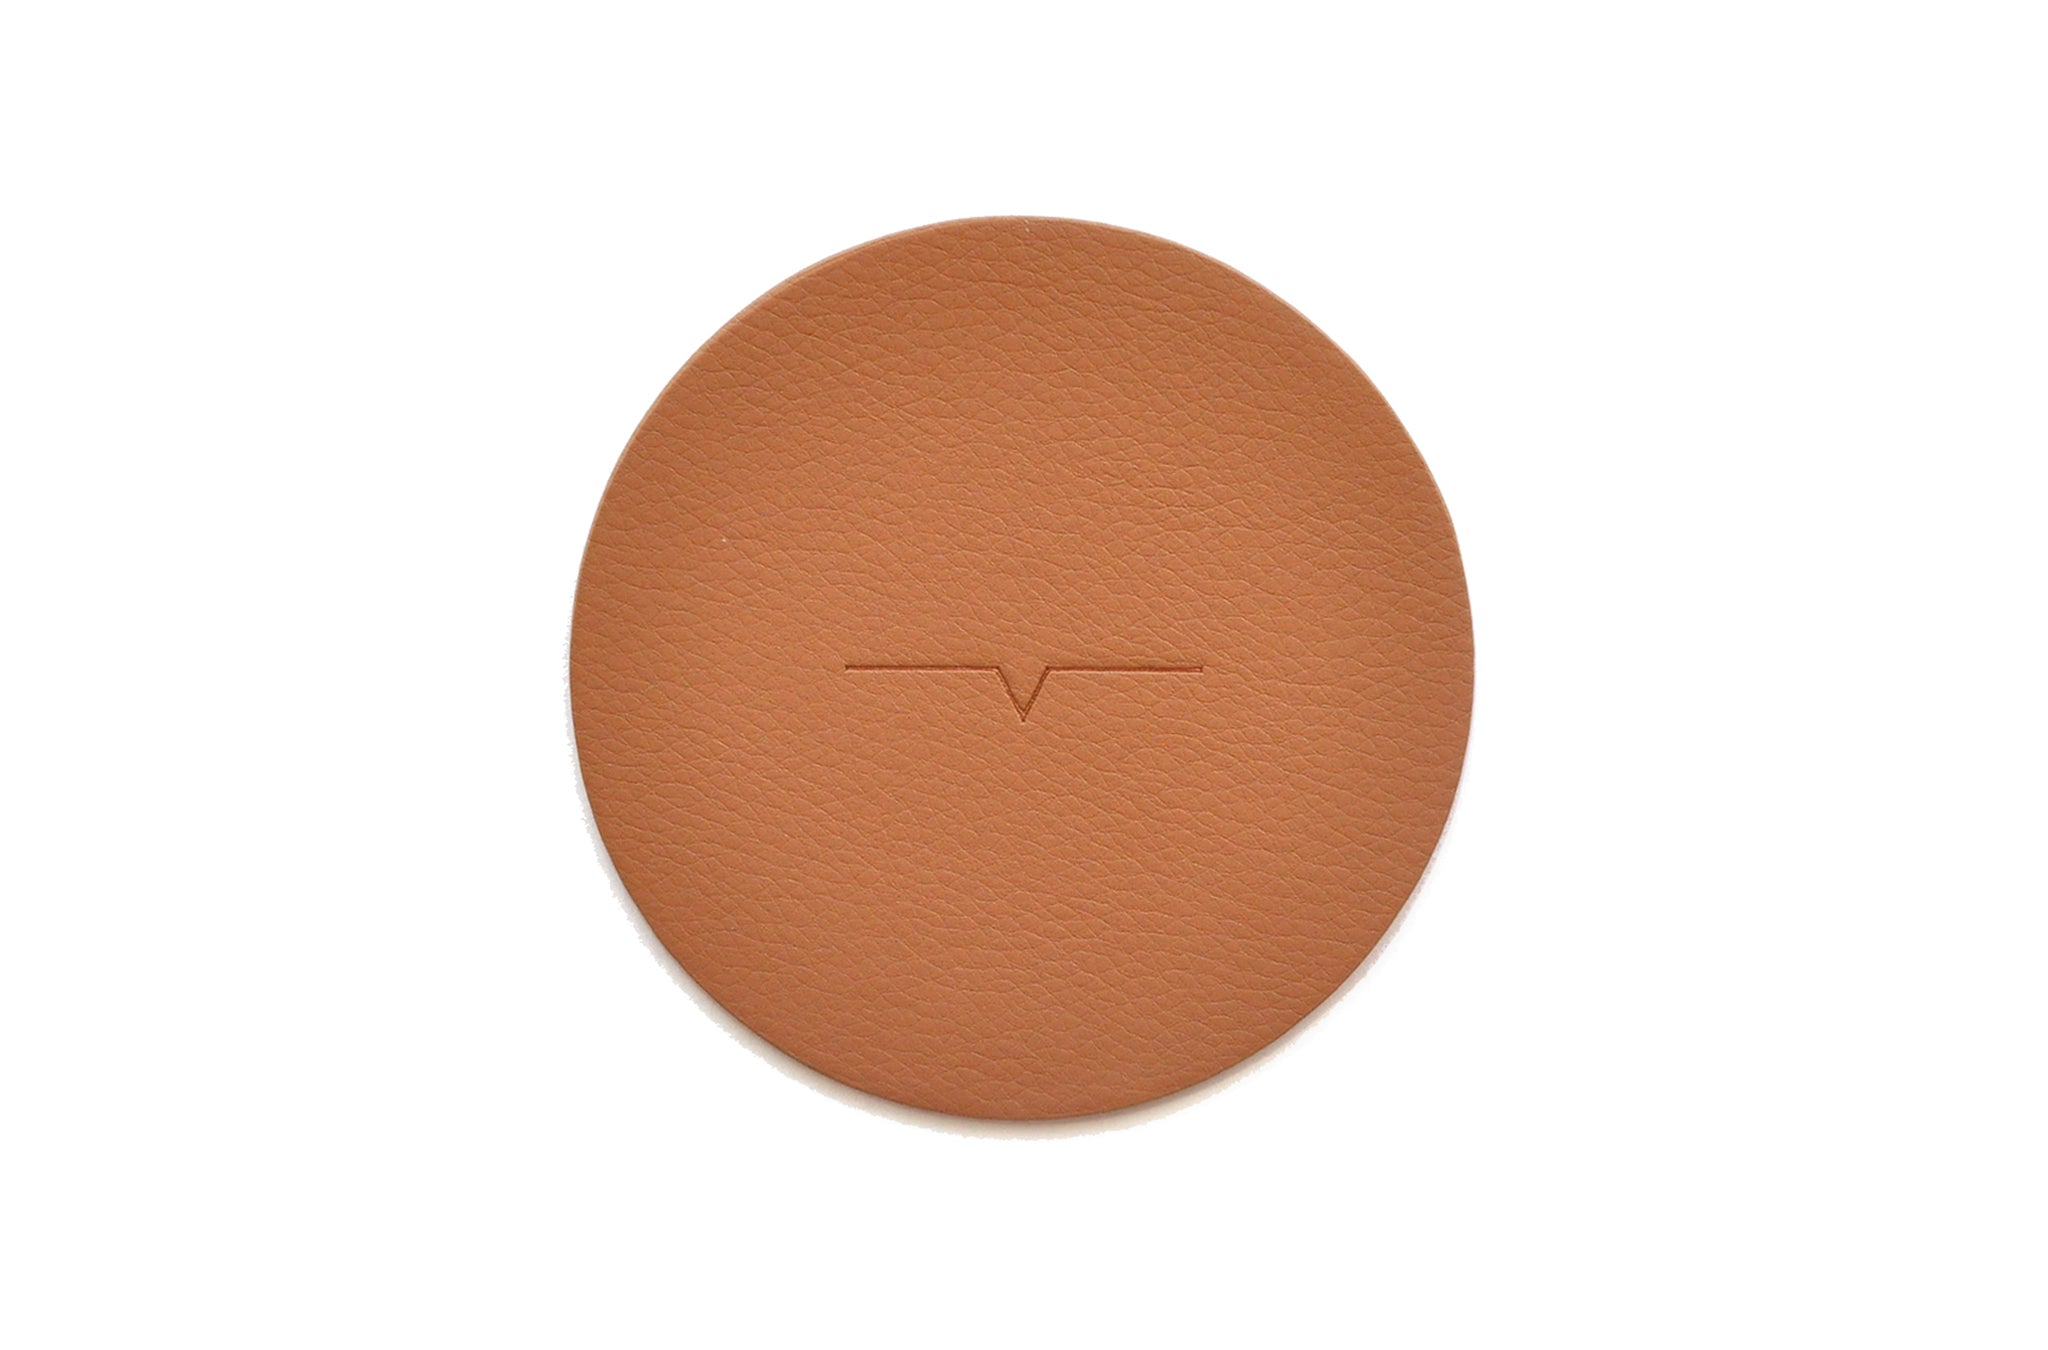 The Swatch in Technik-Leather in Caramel